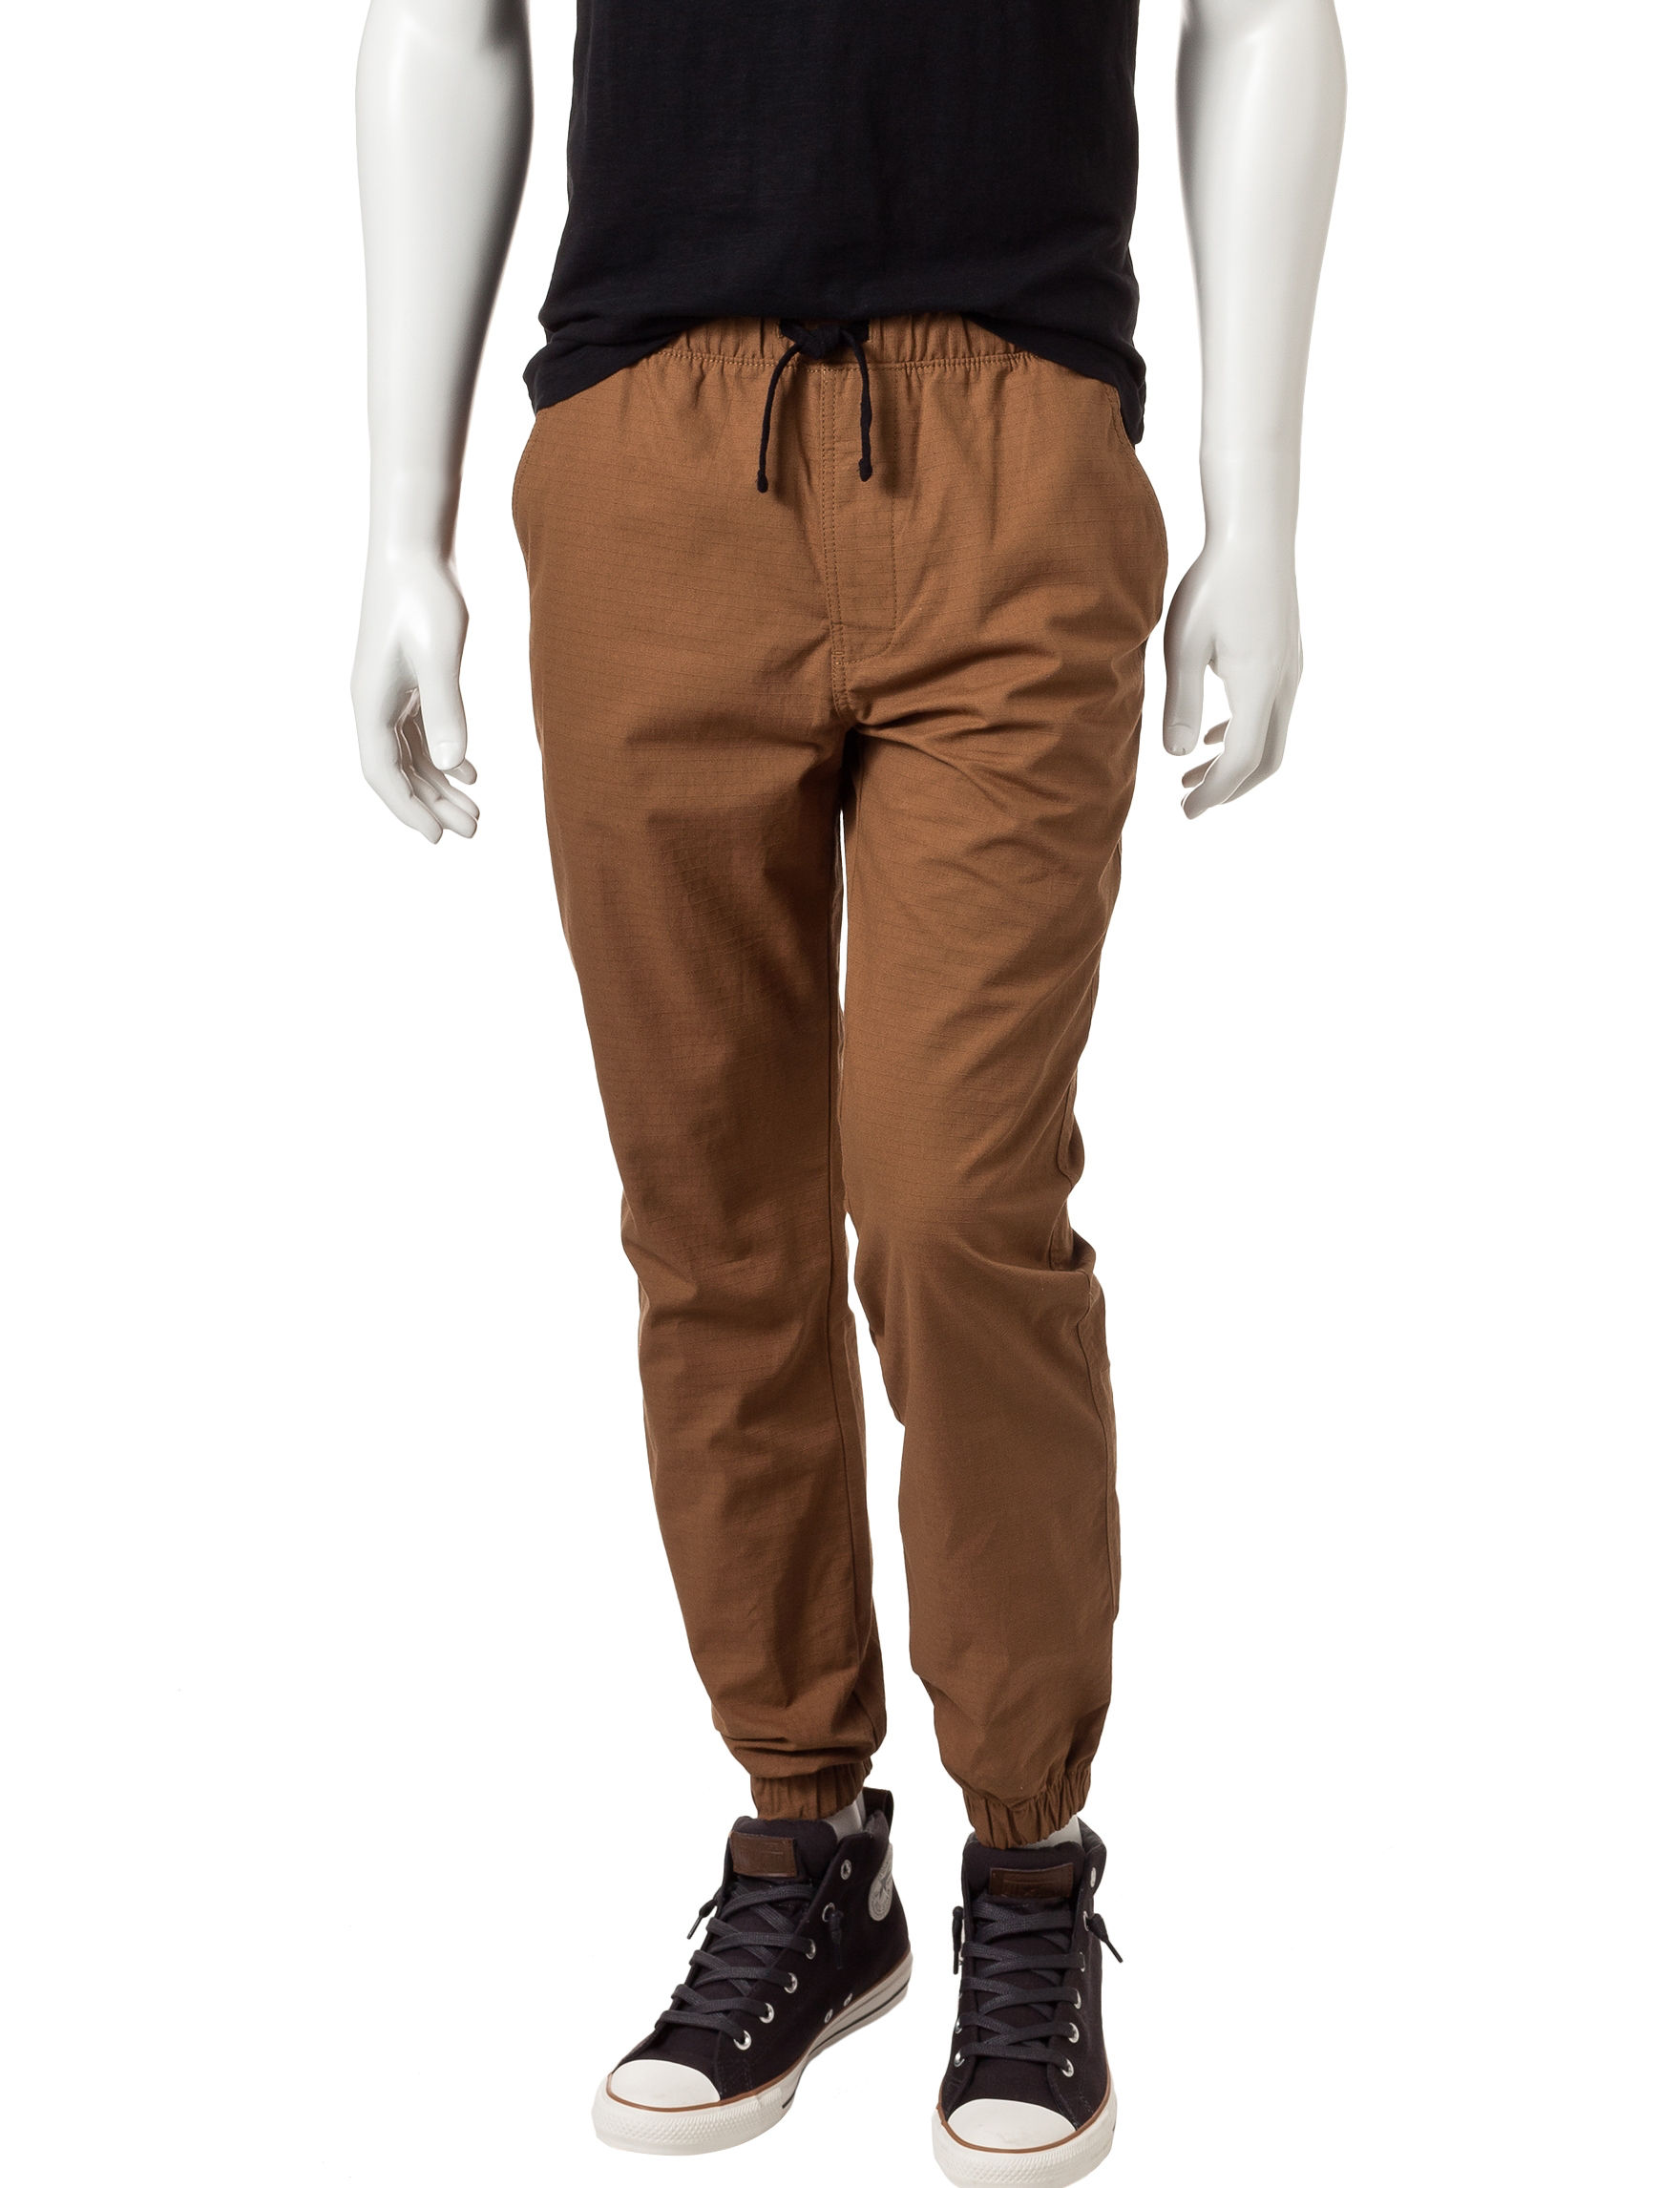 Adtn Intl Brown